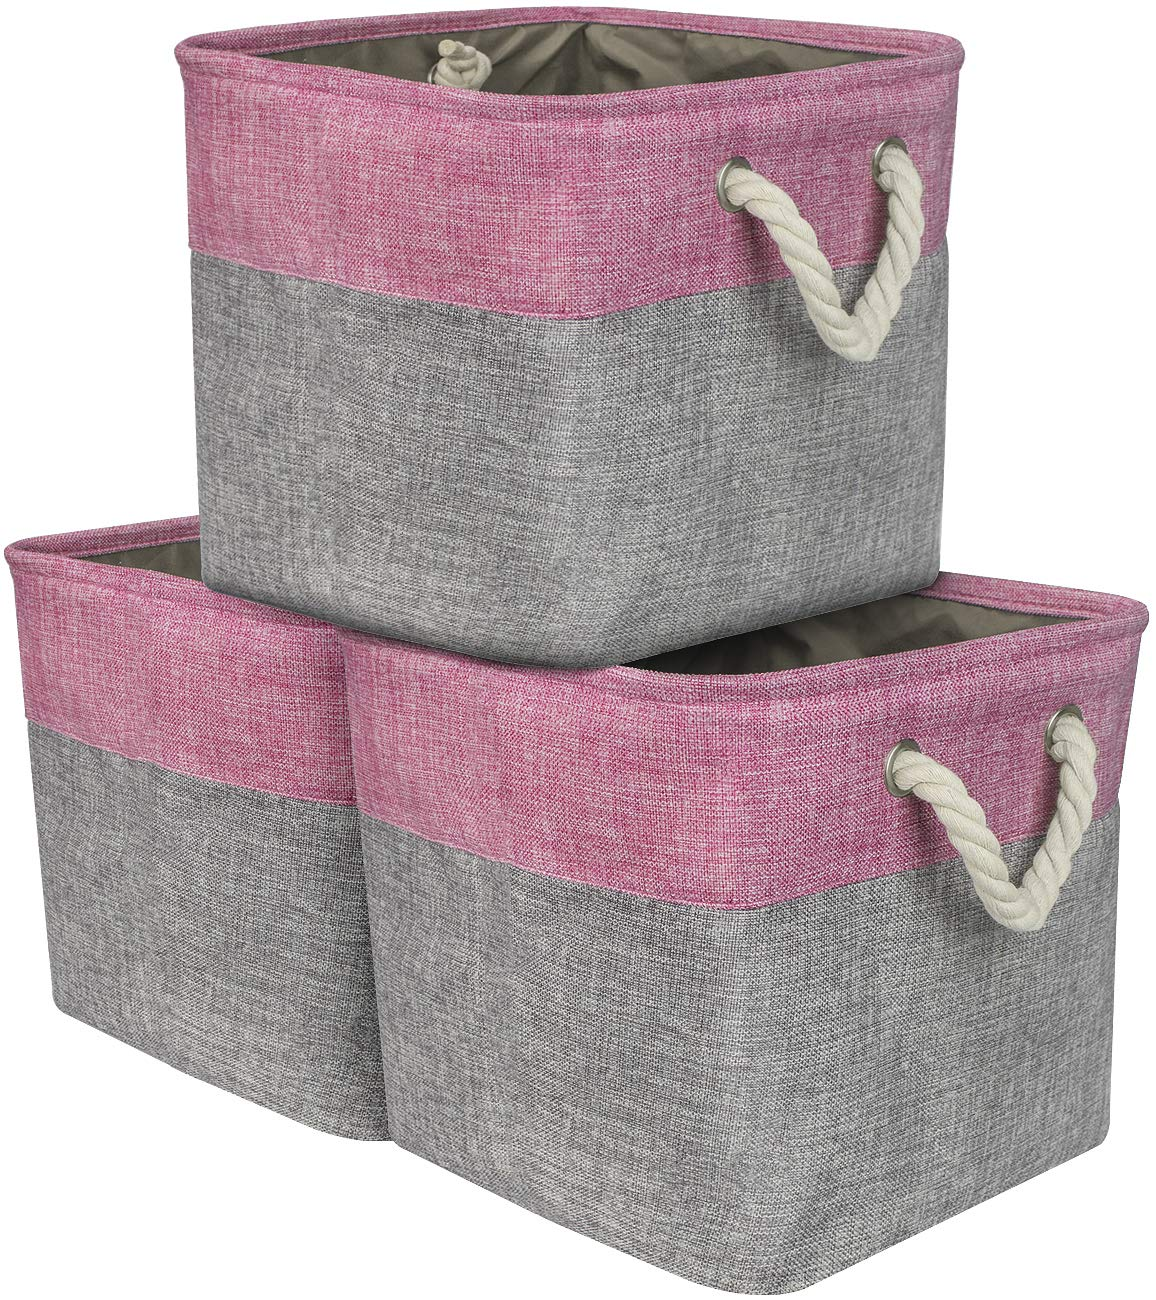 Sorbus Cube Storage Bins Basket Set [3-Pack] Large Square Cube Fabric Collapsible Organizer Bin with Cotton Rope Carry Handles for Linens, Toys, Clothes (Pink) by Sorbus